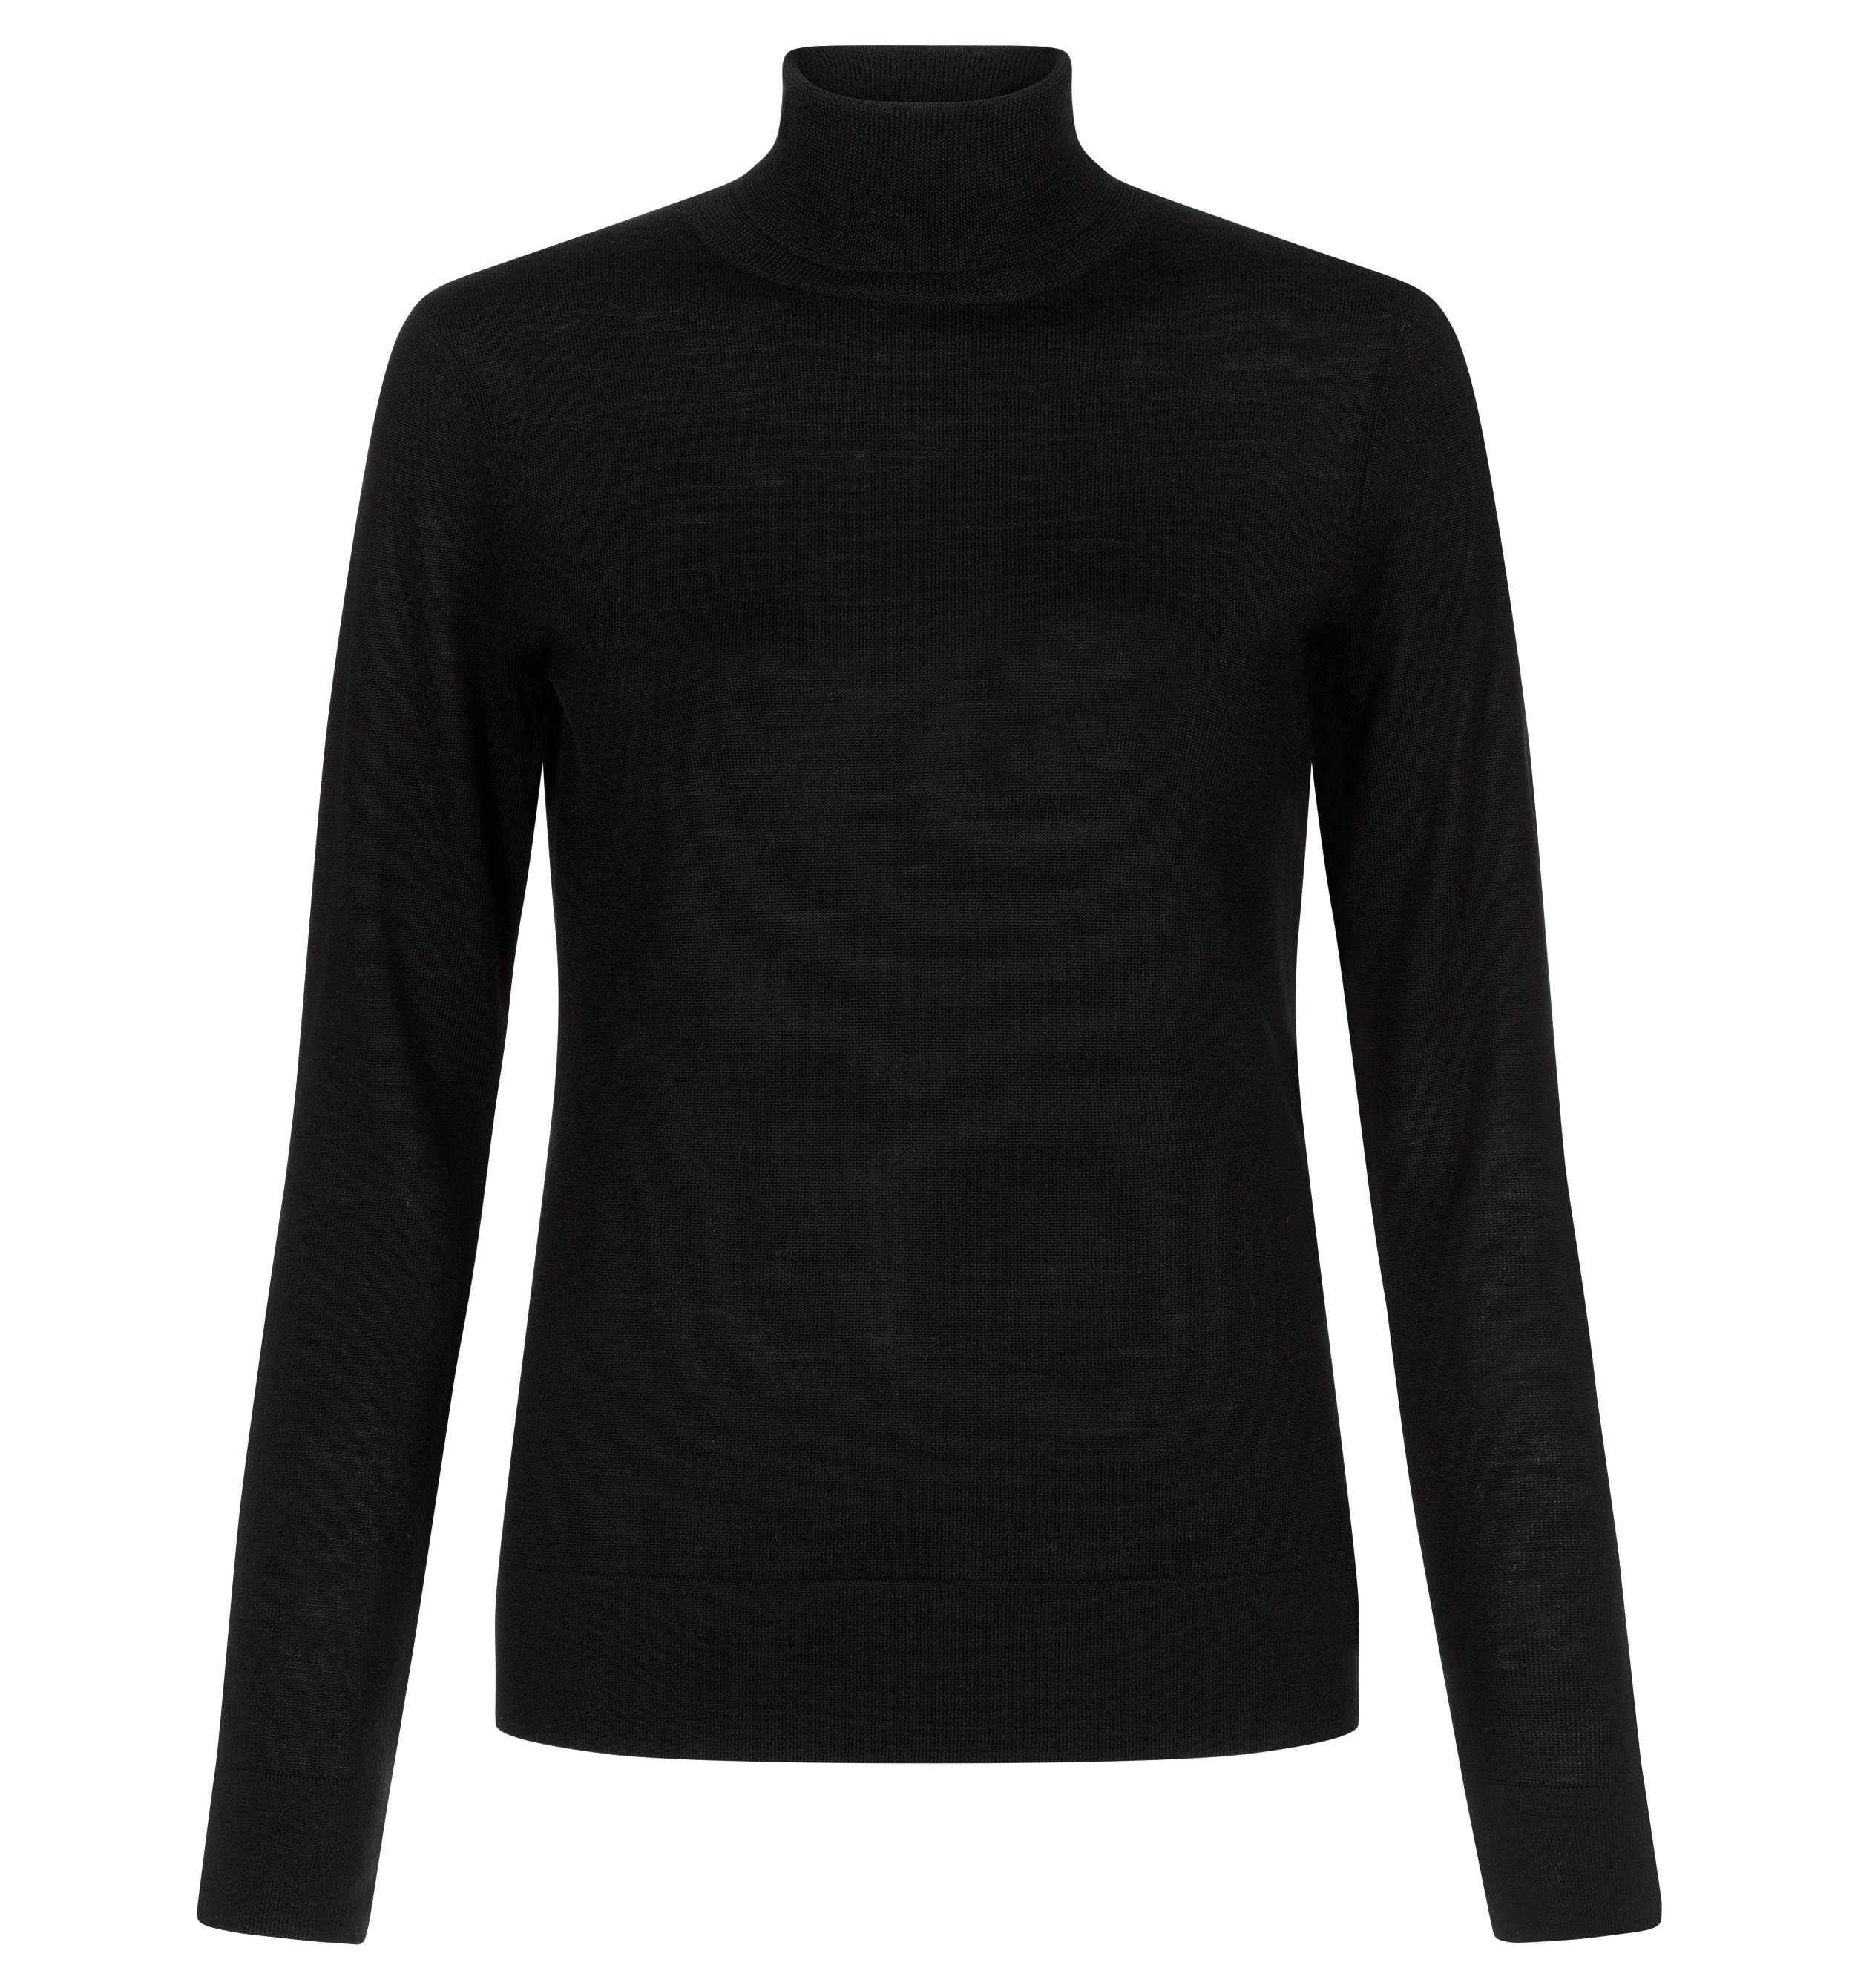 Hobbs Hobbs Lara Roll Neck, Black